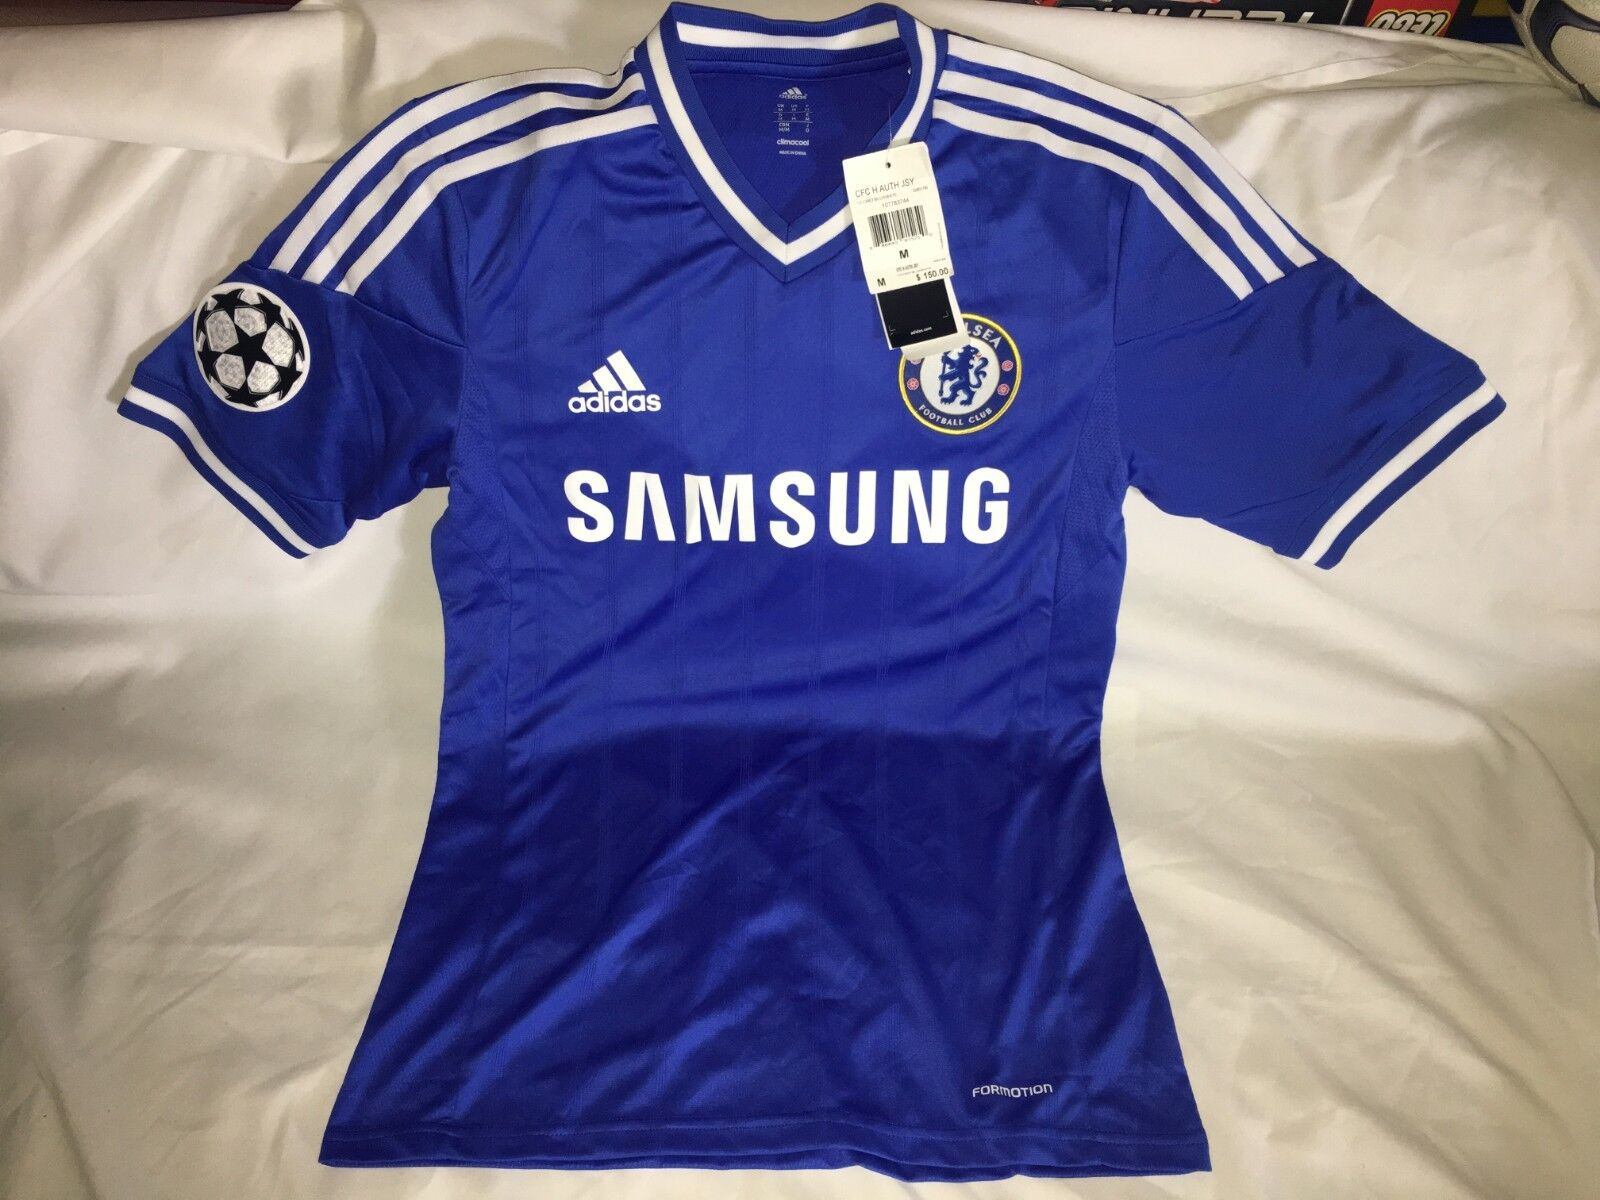 Adidas 13 14 Chelsea Champions League Authentic Formotion Jersey Hombre Taille